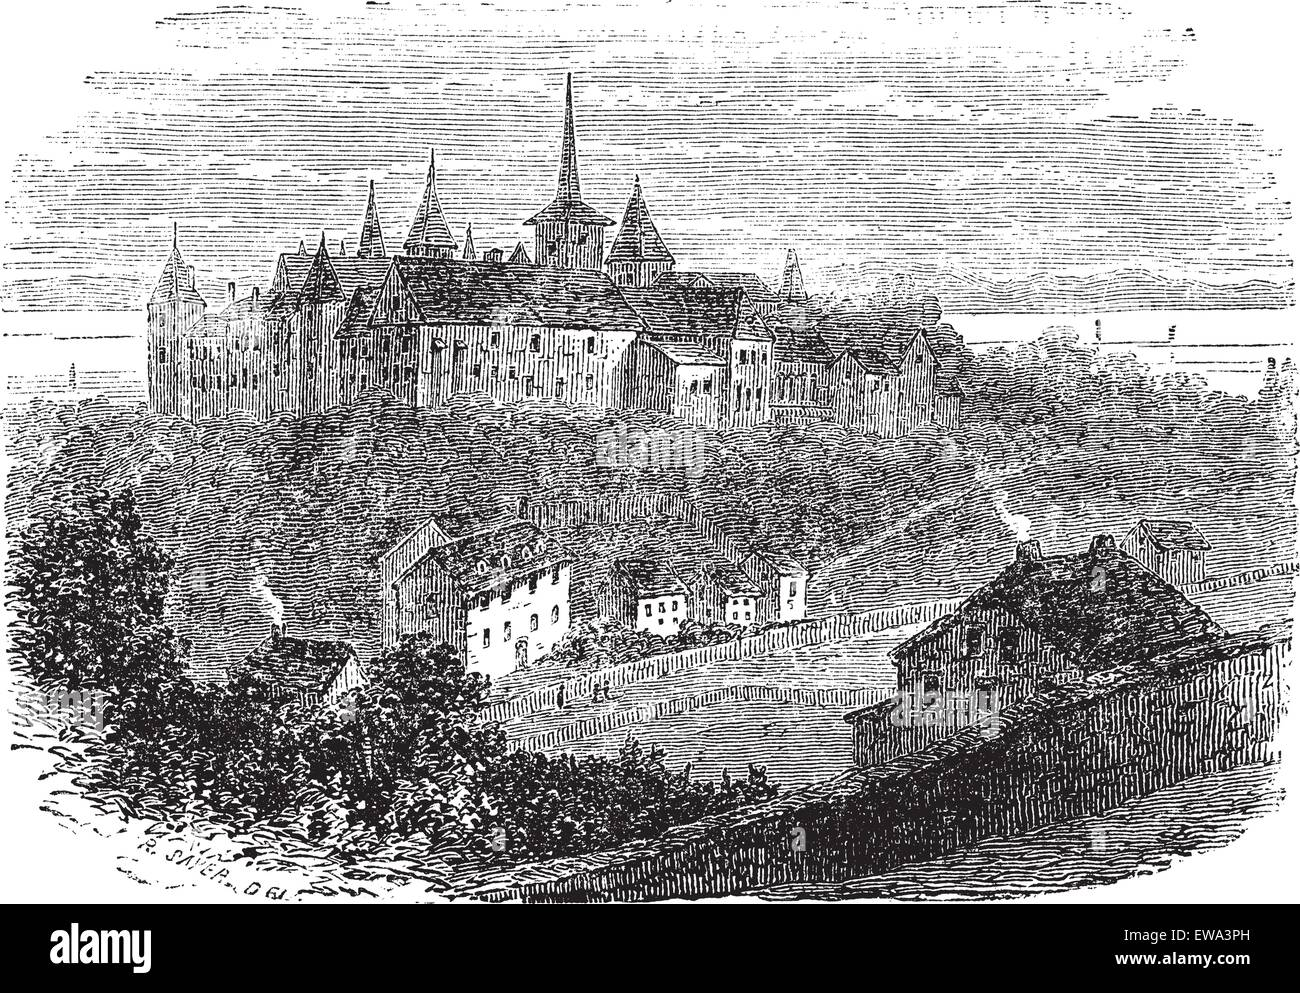 Chateau du Val-Boury in Neufchatel-en-Bray, France, vintage engraved illustration. Trousset encyclopedia (1886  - Stock Image